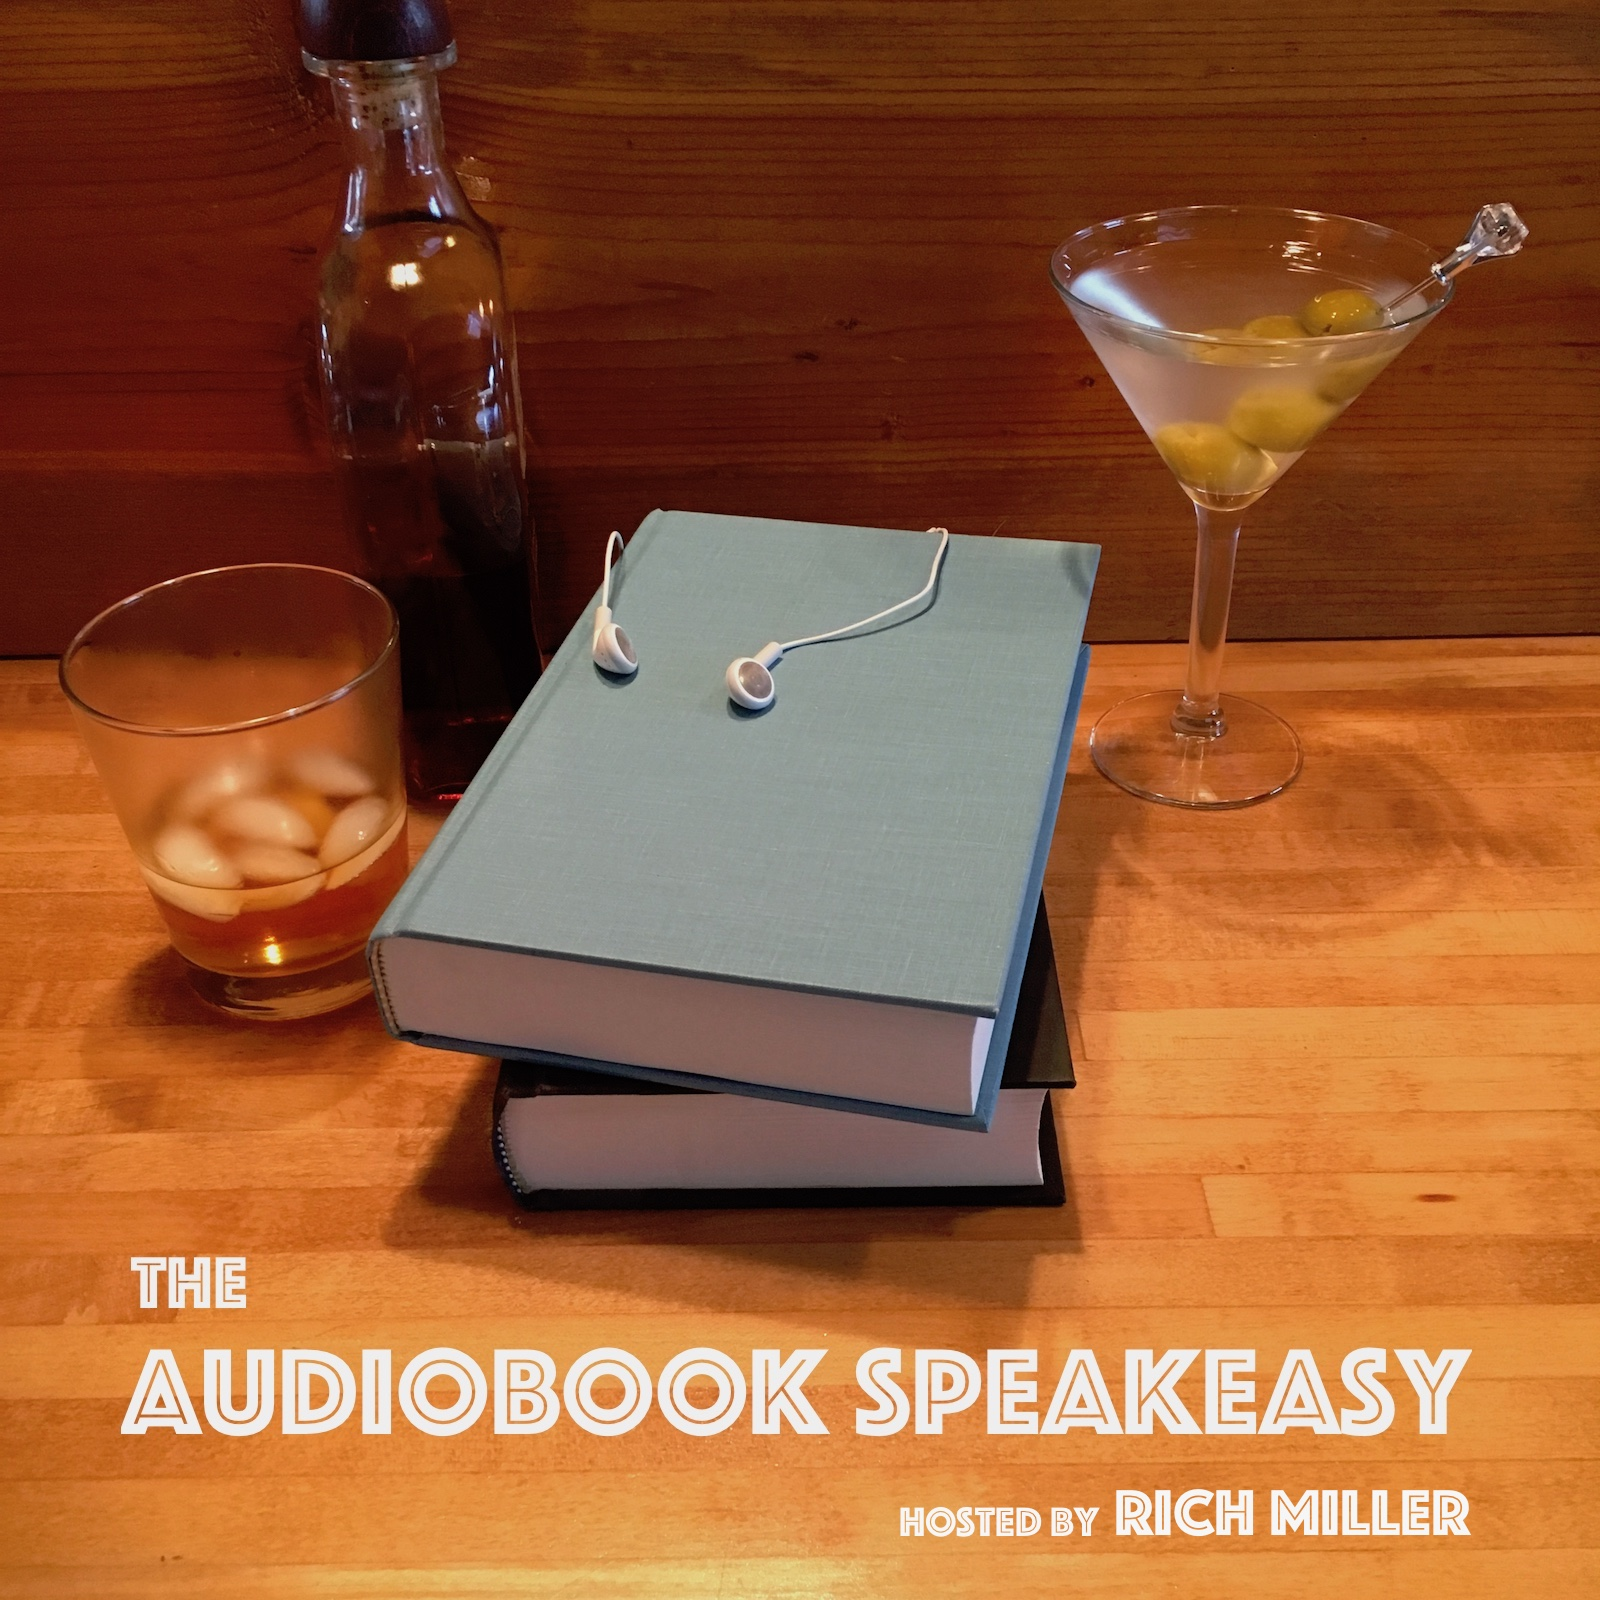 Audiobook Speakeasy cover 2.jpg